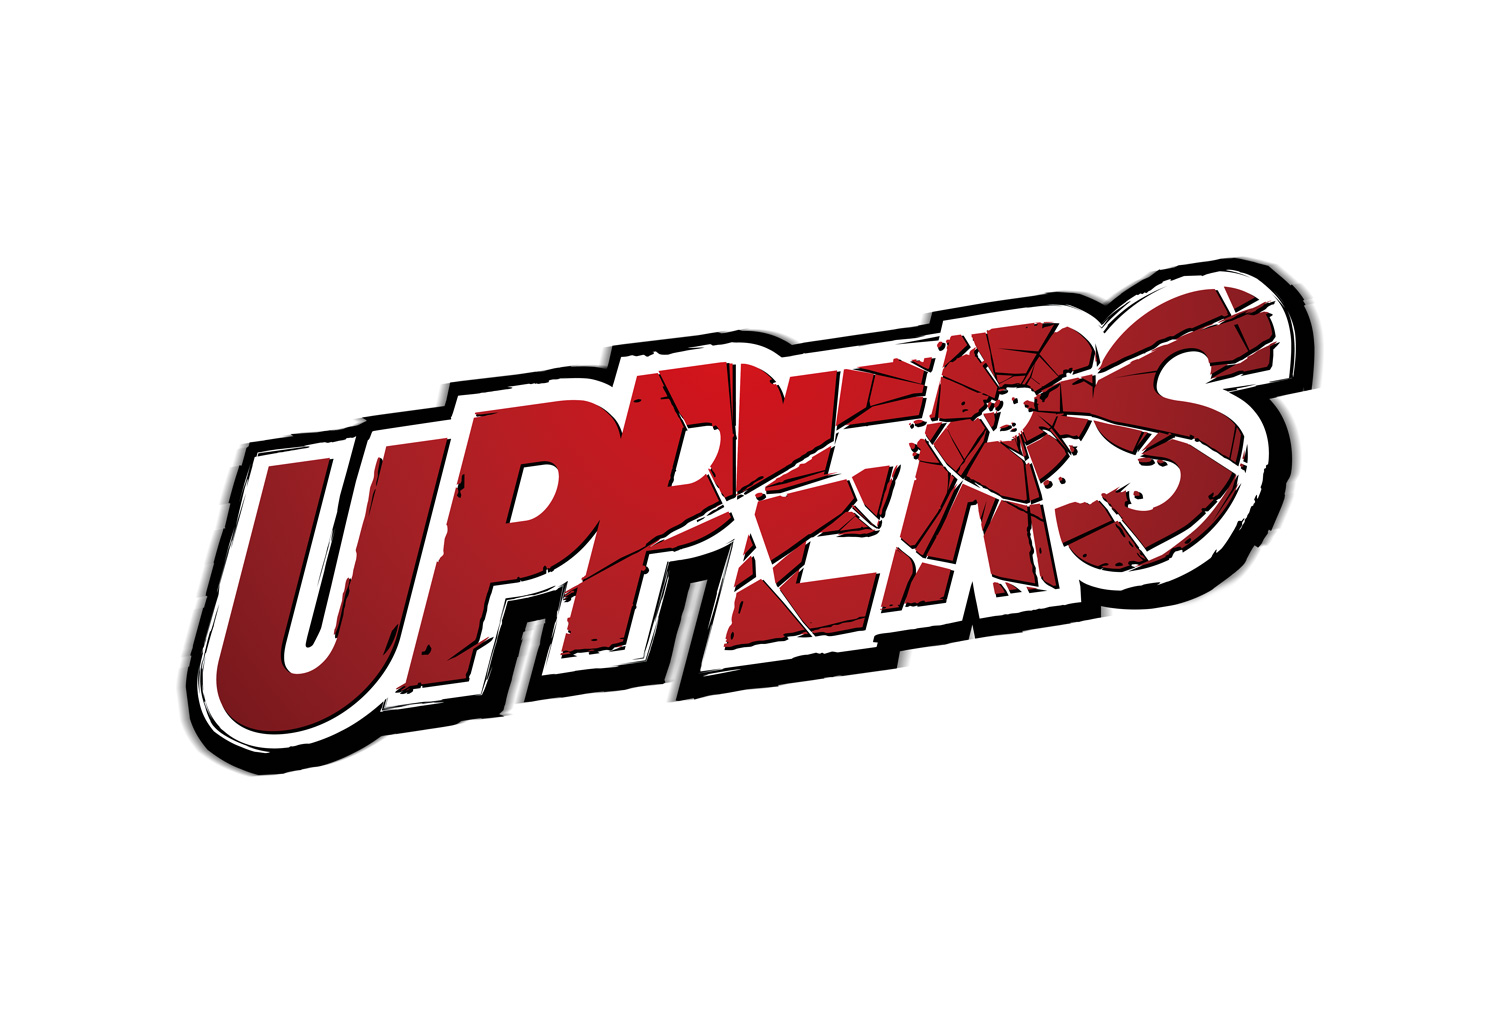 My Name is Dan Graphic Translations and Designs for UPPERS by Marvelous Games